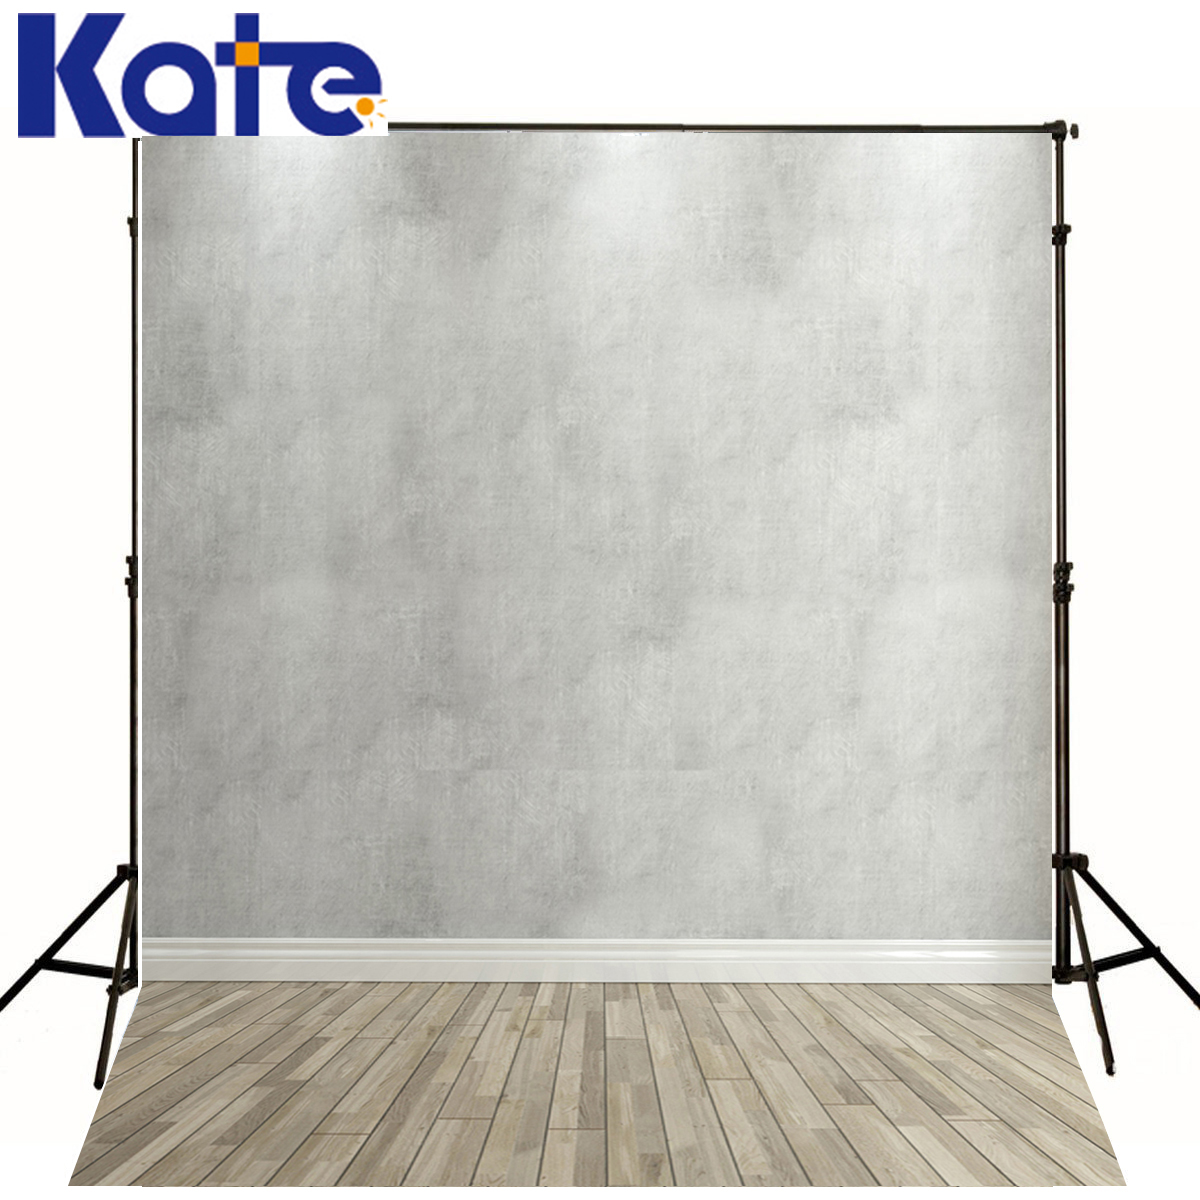 Kate Wood Background Photography Solid White Wall Backdrop Photo Wood Floor Photocall Backgrounds For Photo Studio J01676 allenjoy camera photography 5x3ft wood floor backdrop horizontal backgrounds for baby and children professional photo booth